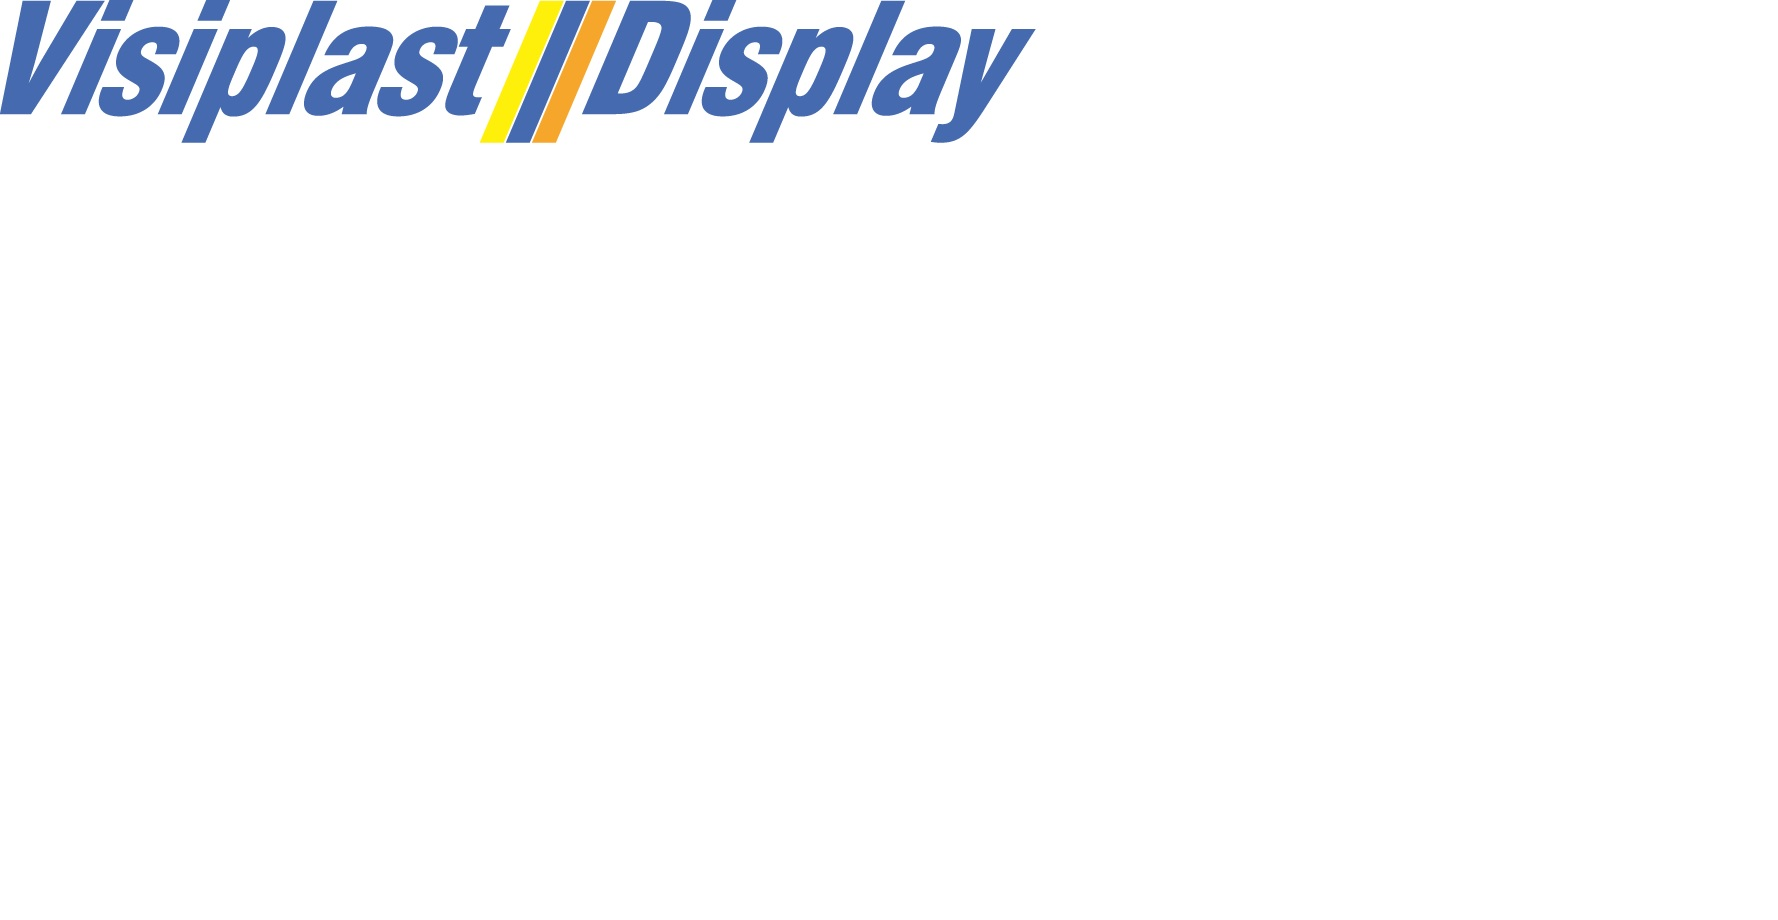 1552907141-visiplast-display.jpg